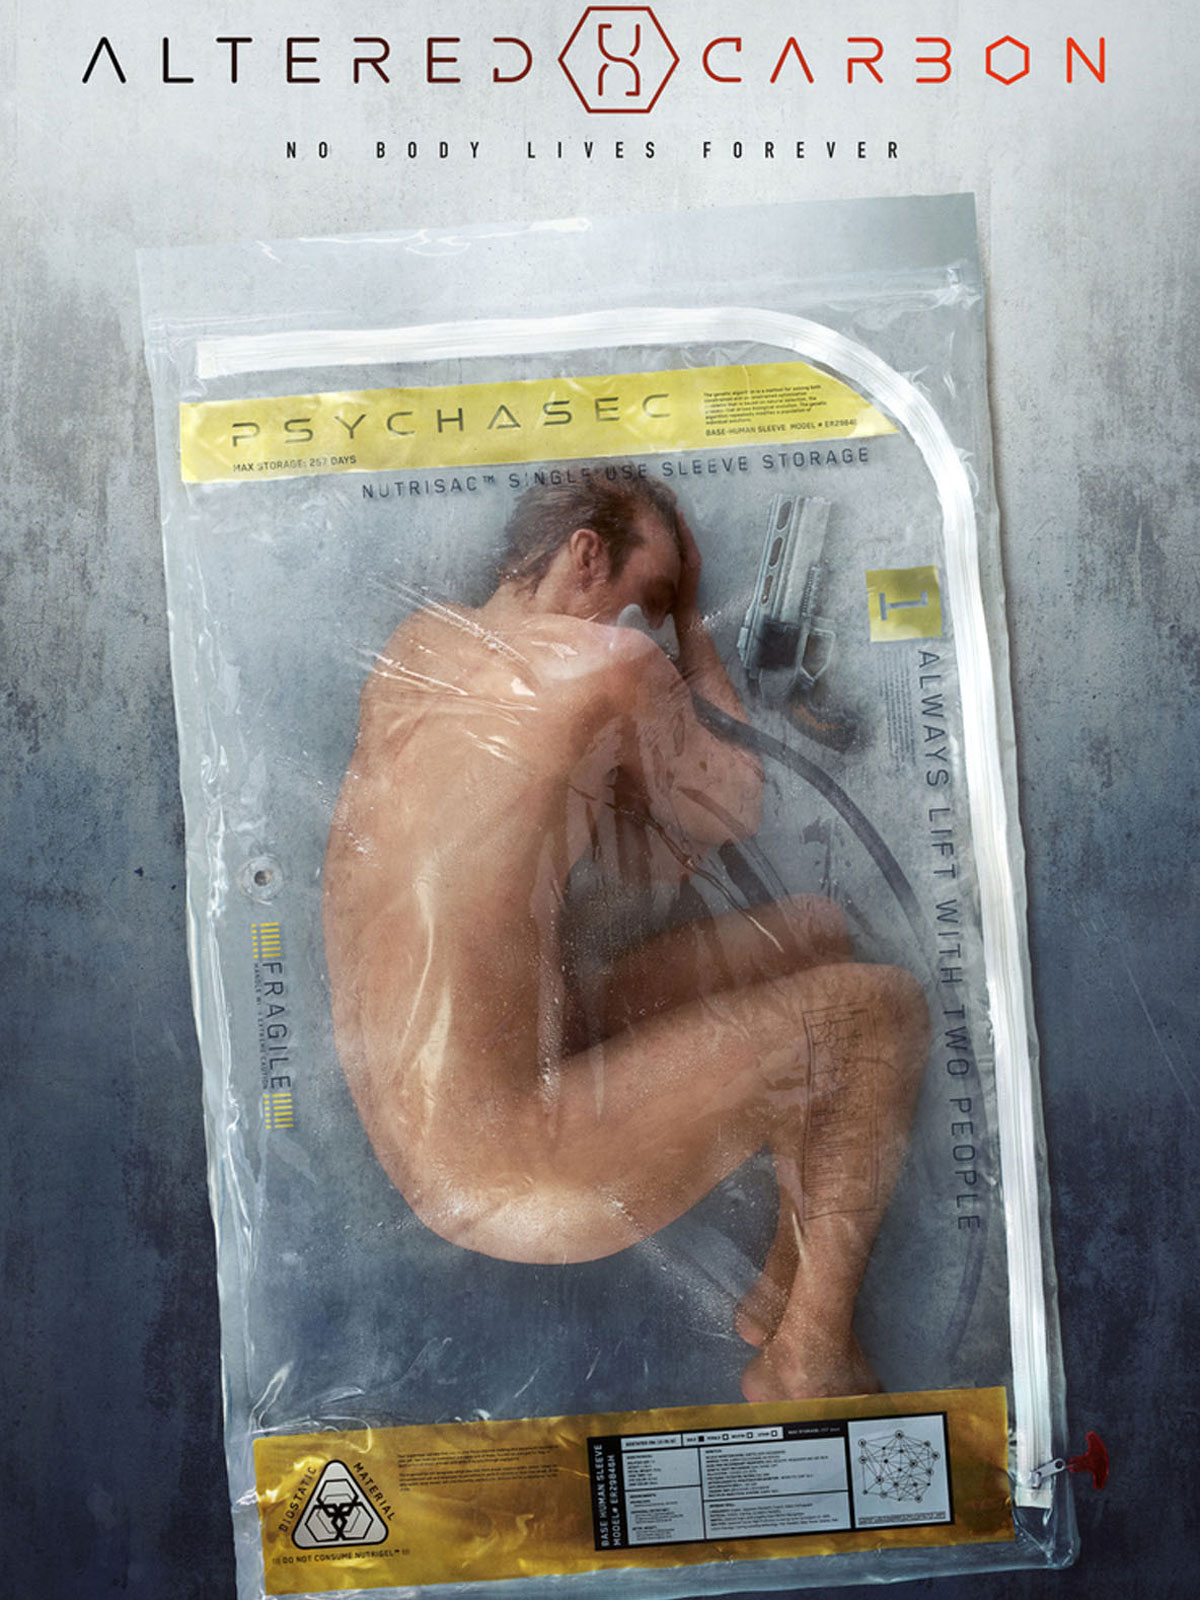 46 - Altered Carbon